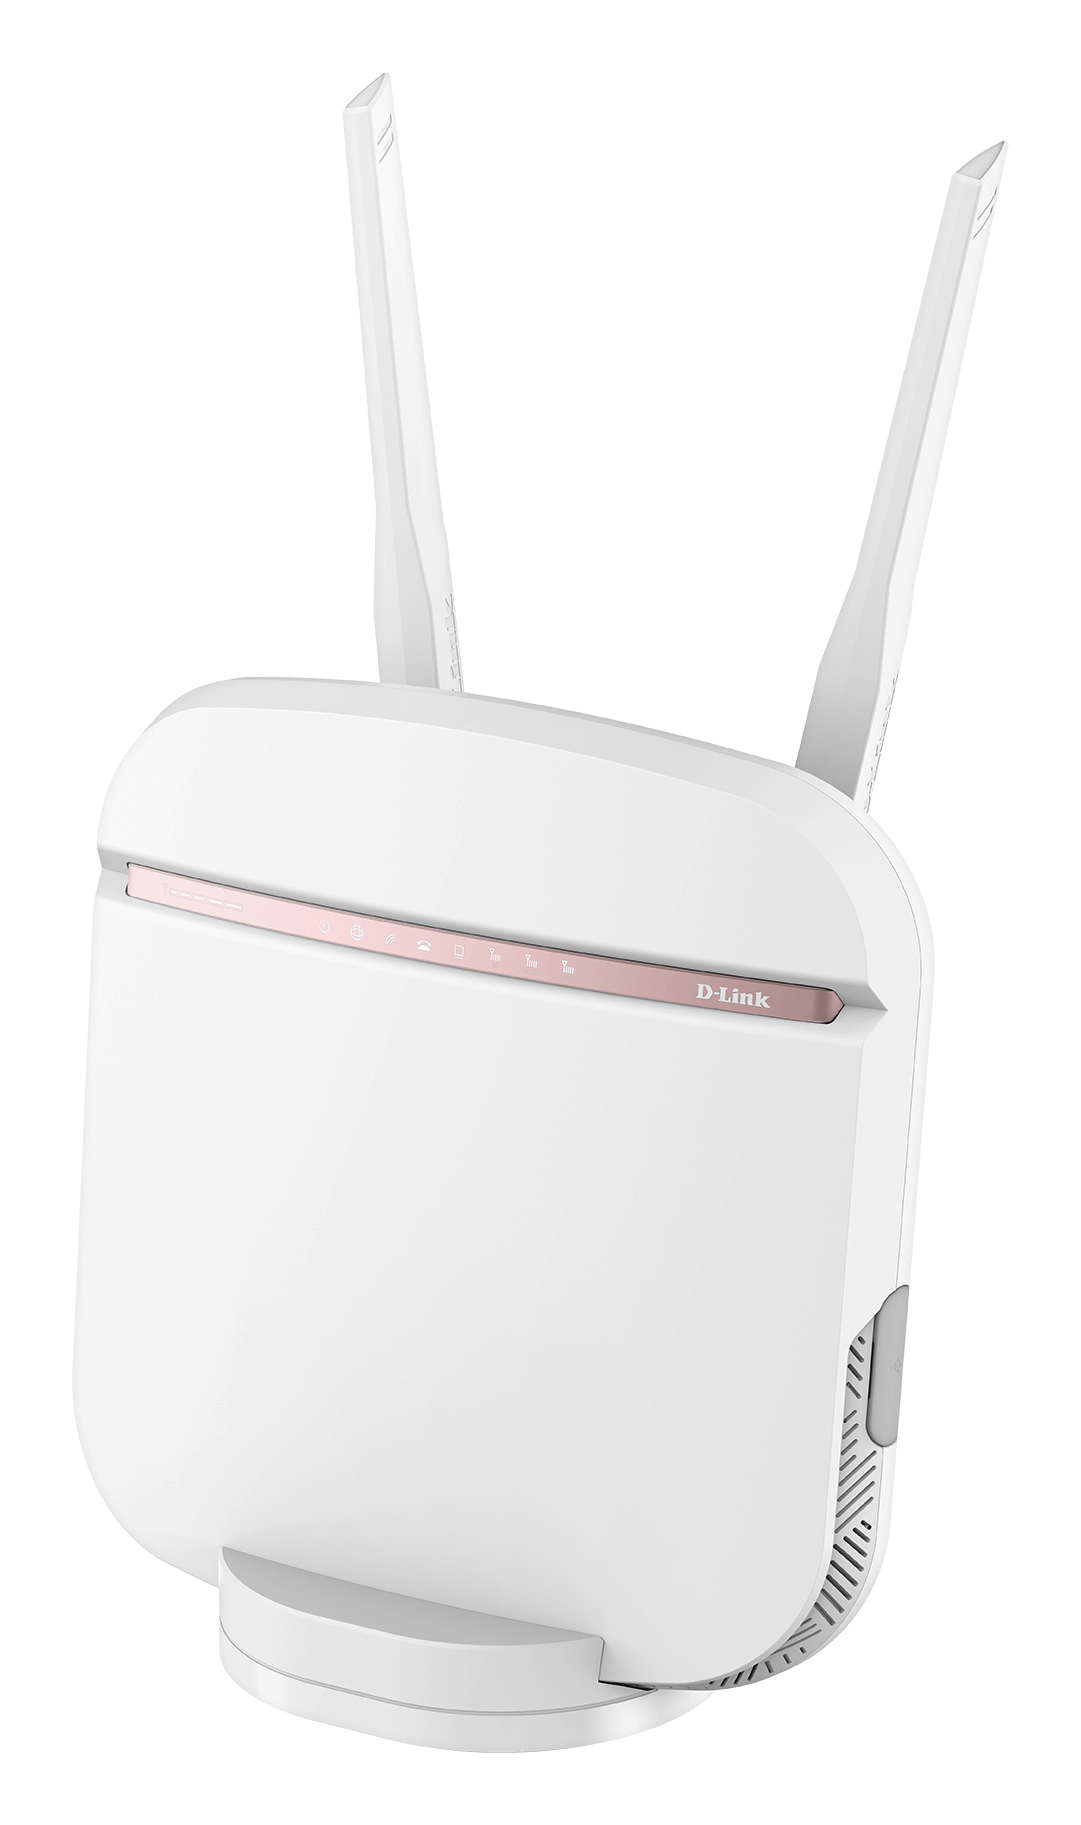 DWR-978 - 5G AC2600 Wi-Fi Router - Left side view.